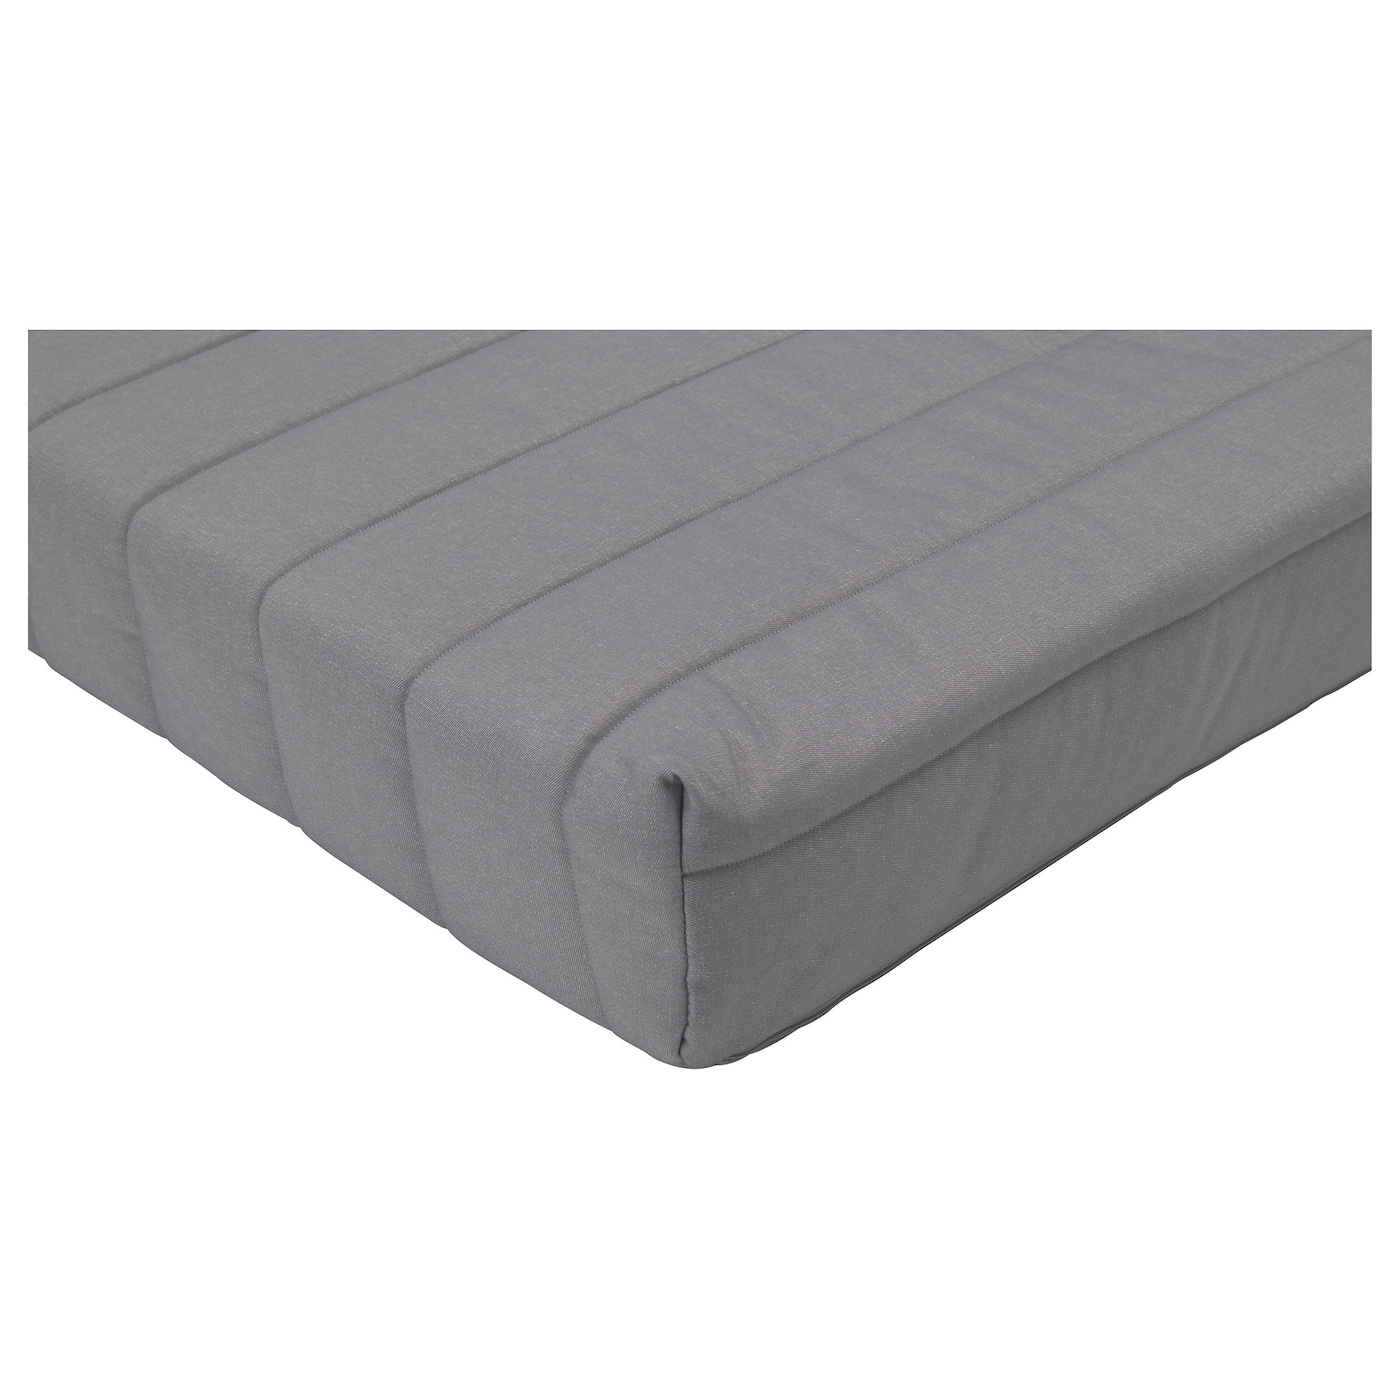 IKEA Single Mattress Double Mattress & Toppers